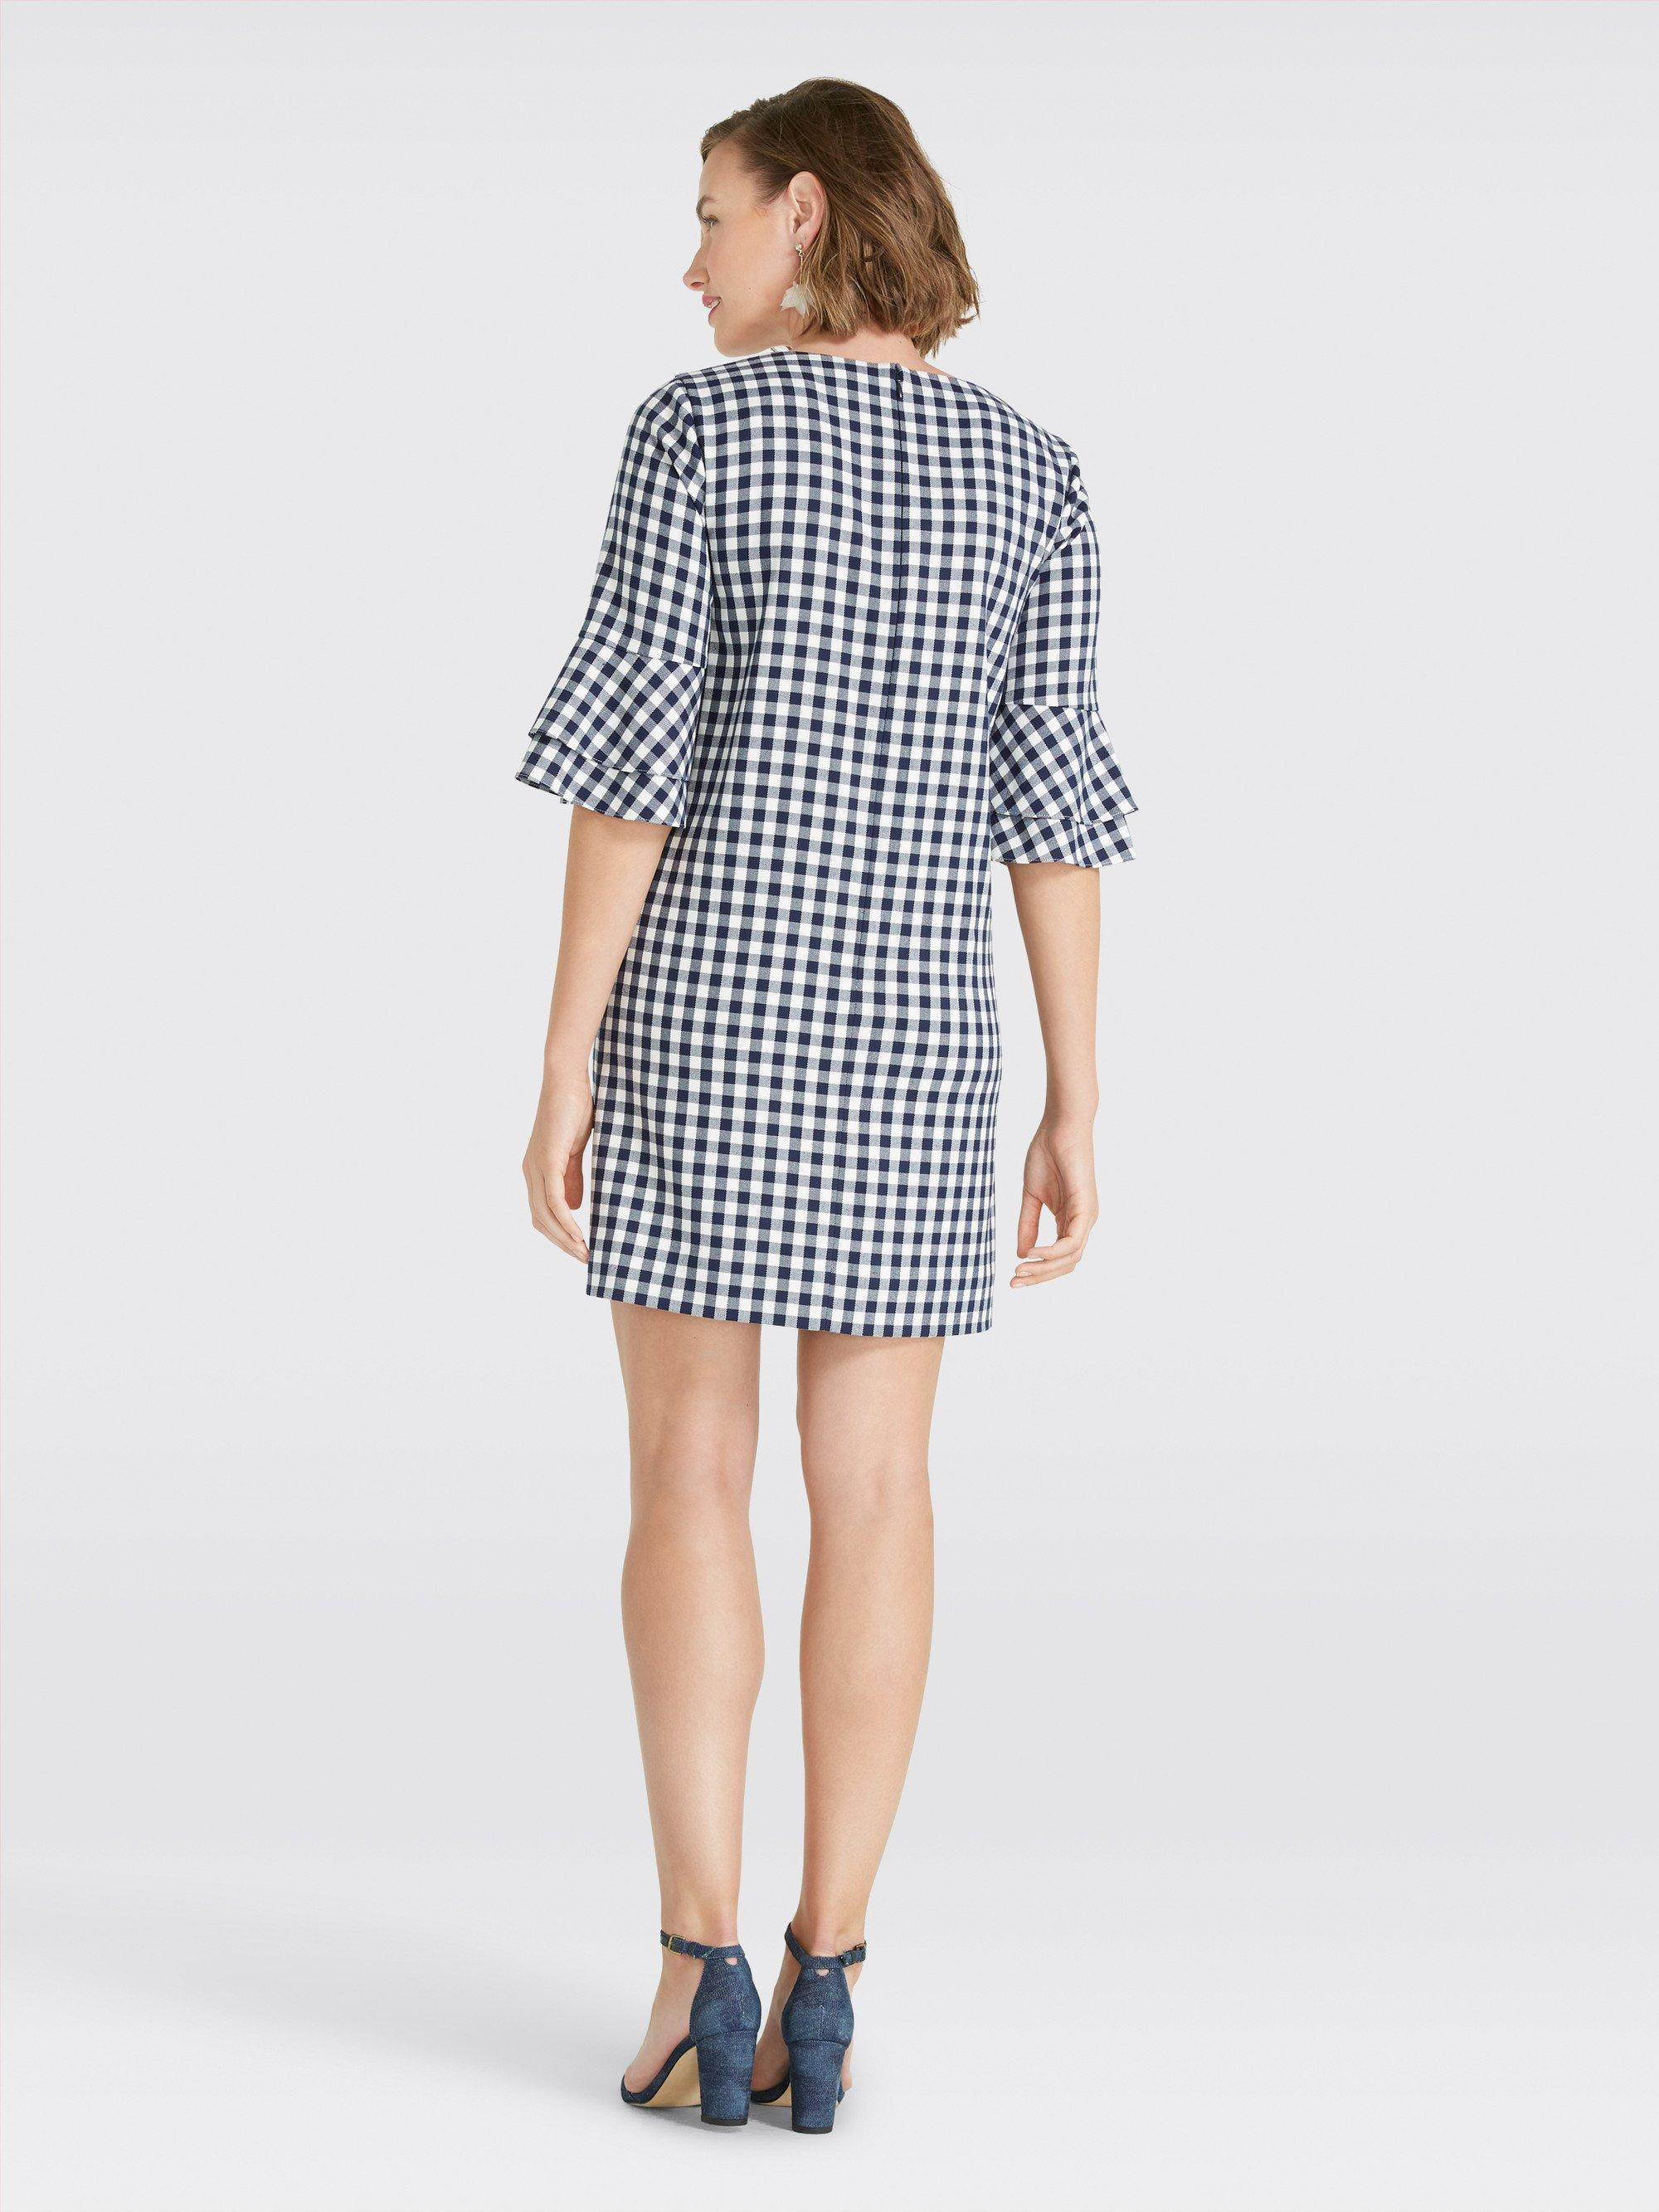 57b8a28f9d2 Draper James - Blue Gingham Bell Sleeve Shift Dress - Lyst. View fullscreen